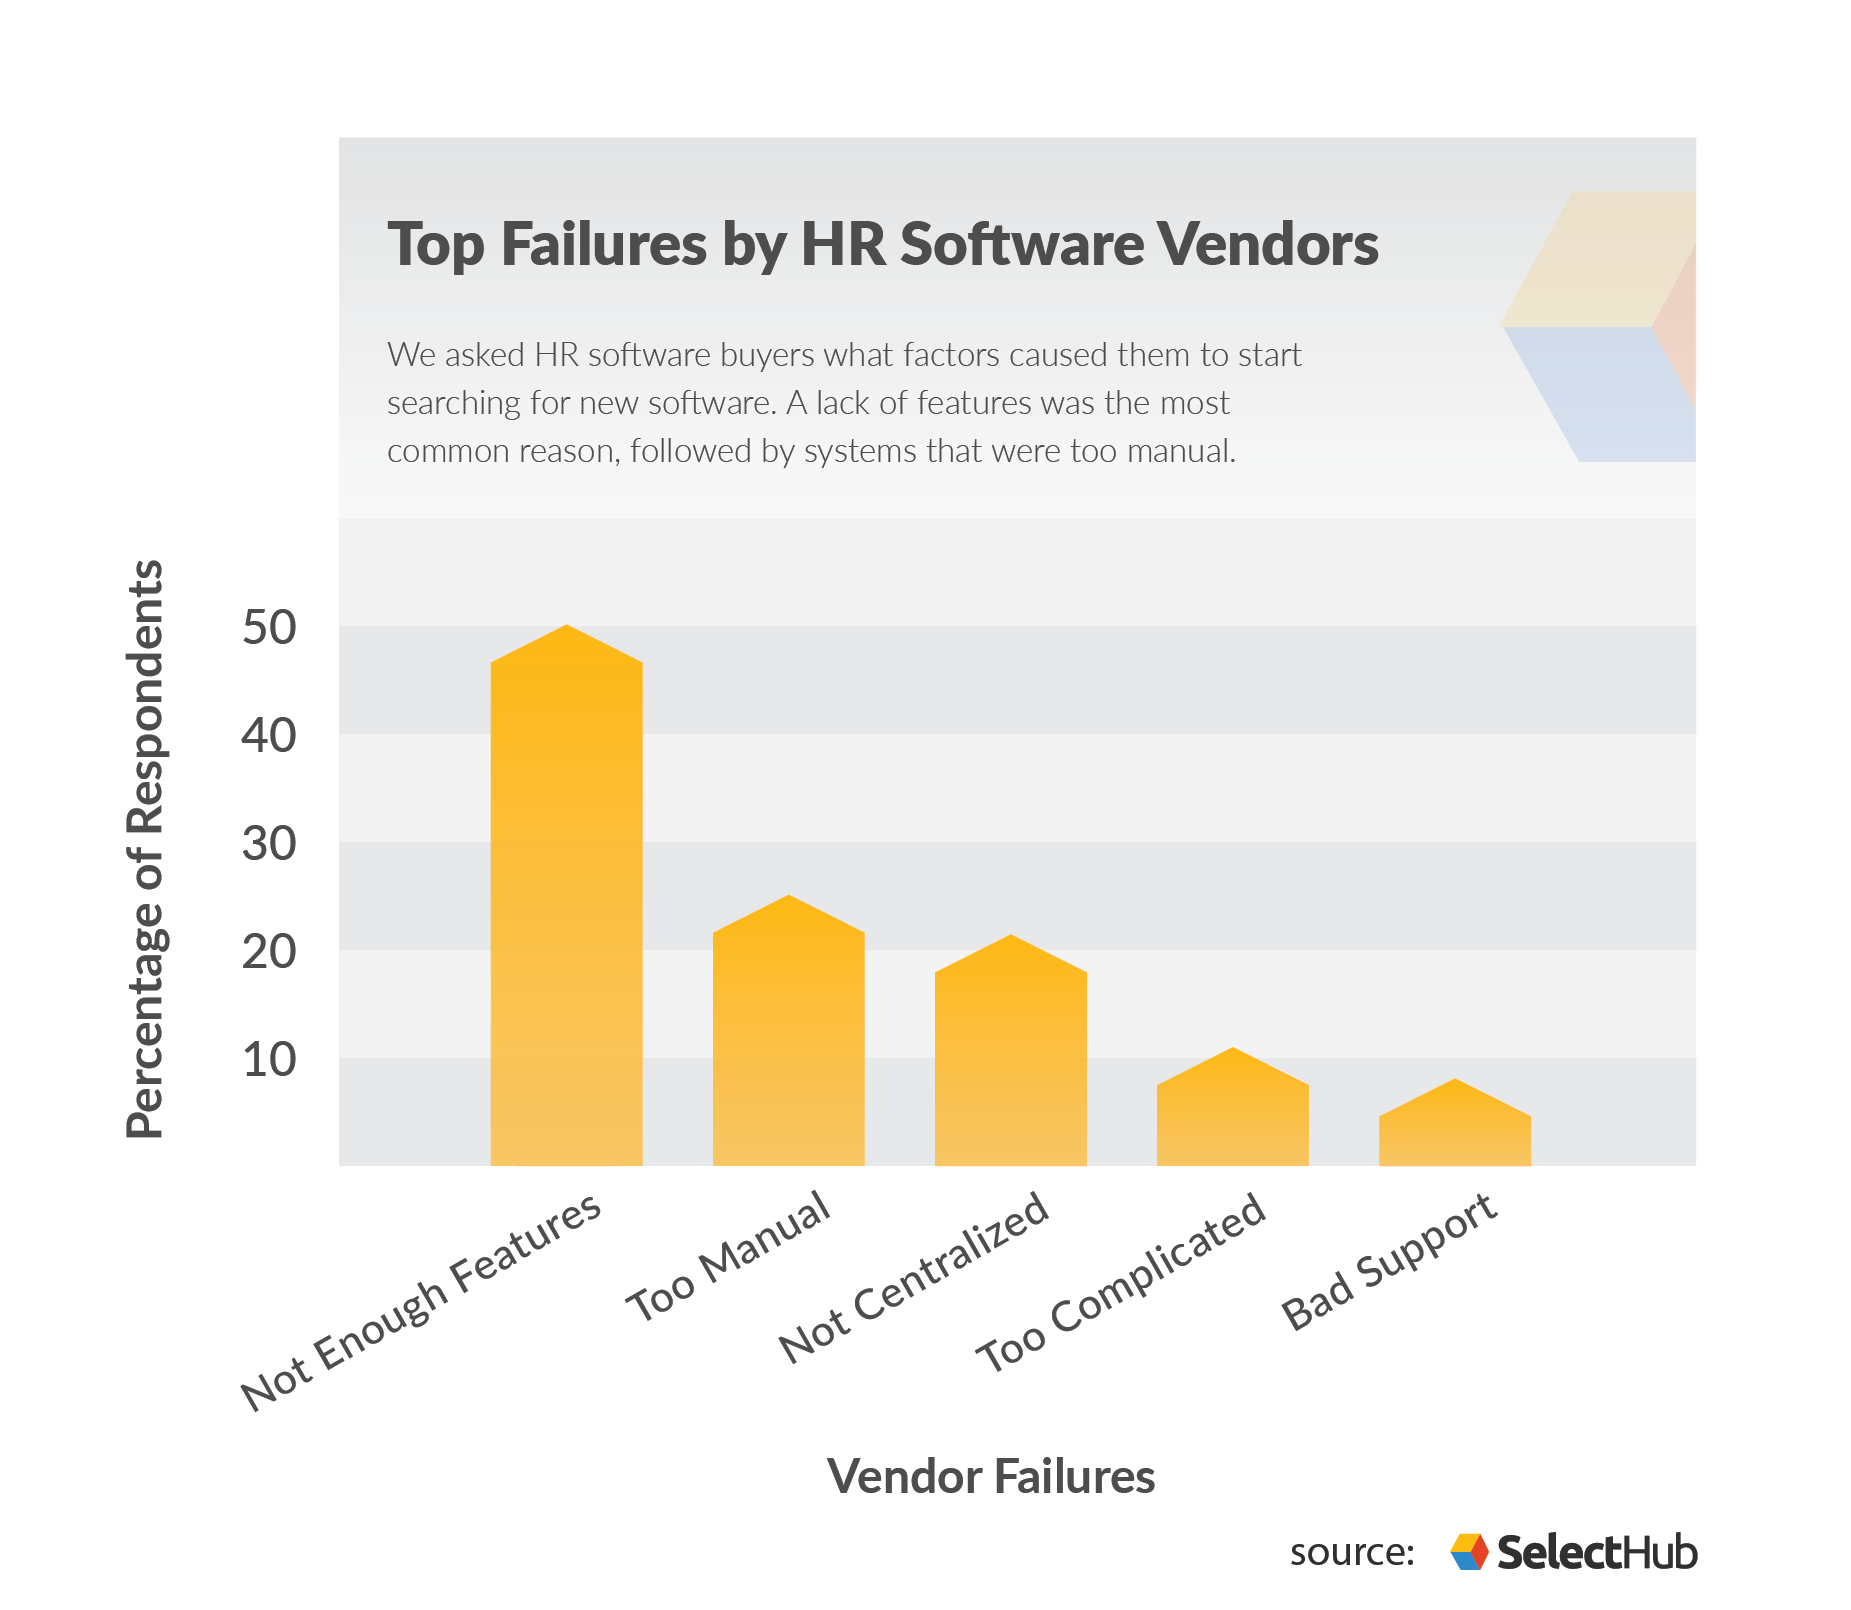 HR Buying Trends Vendor Failures